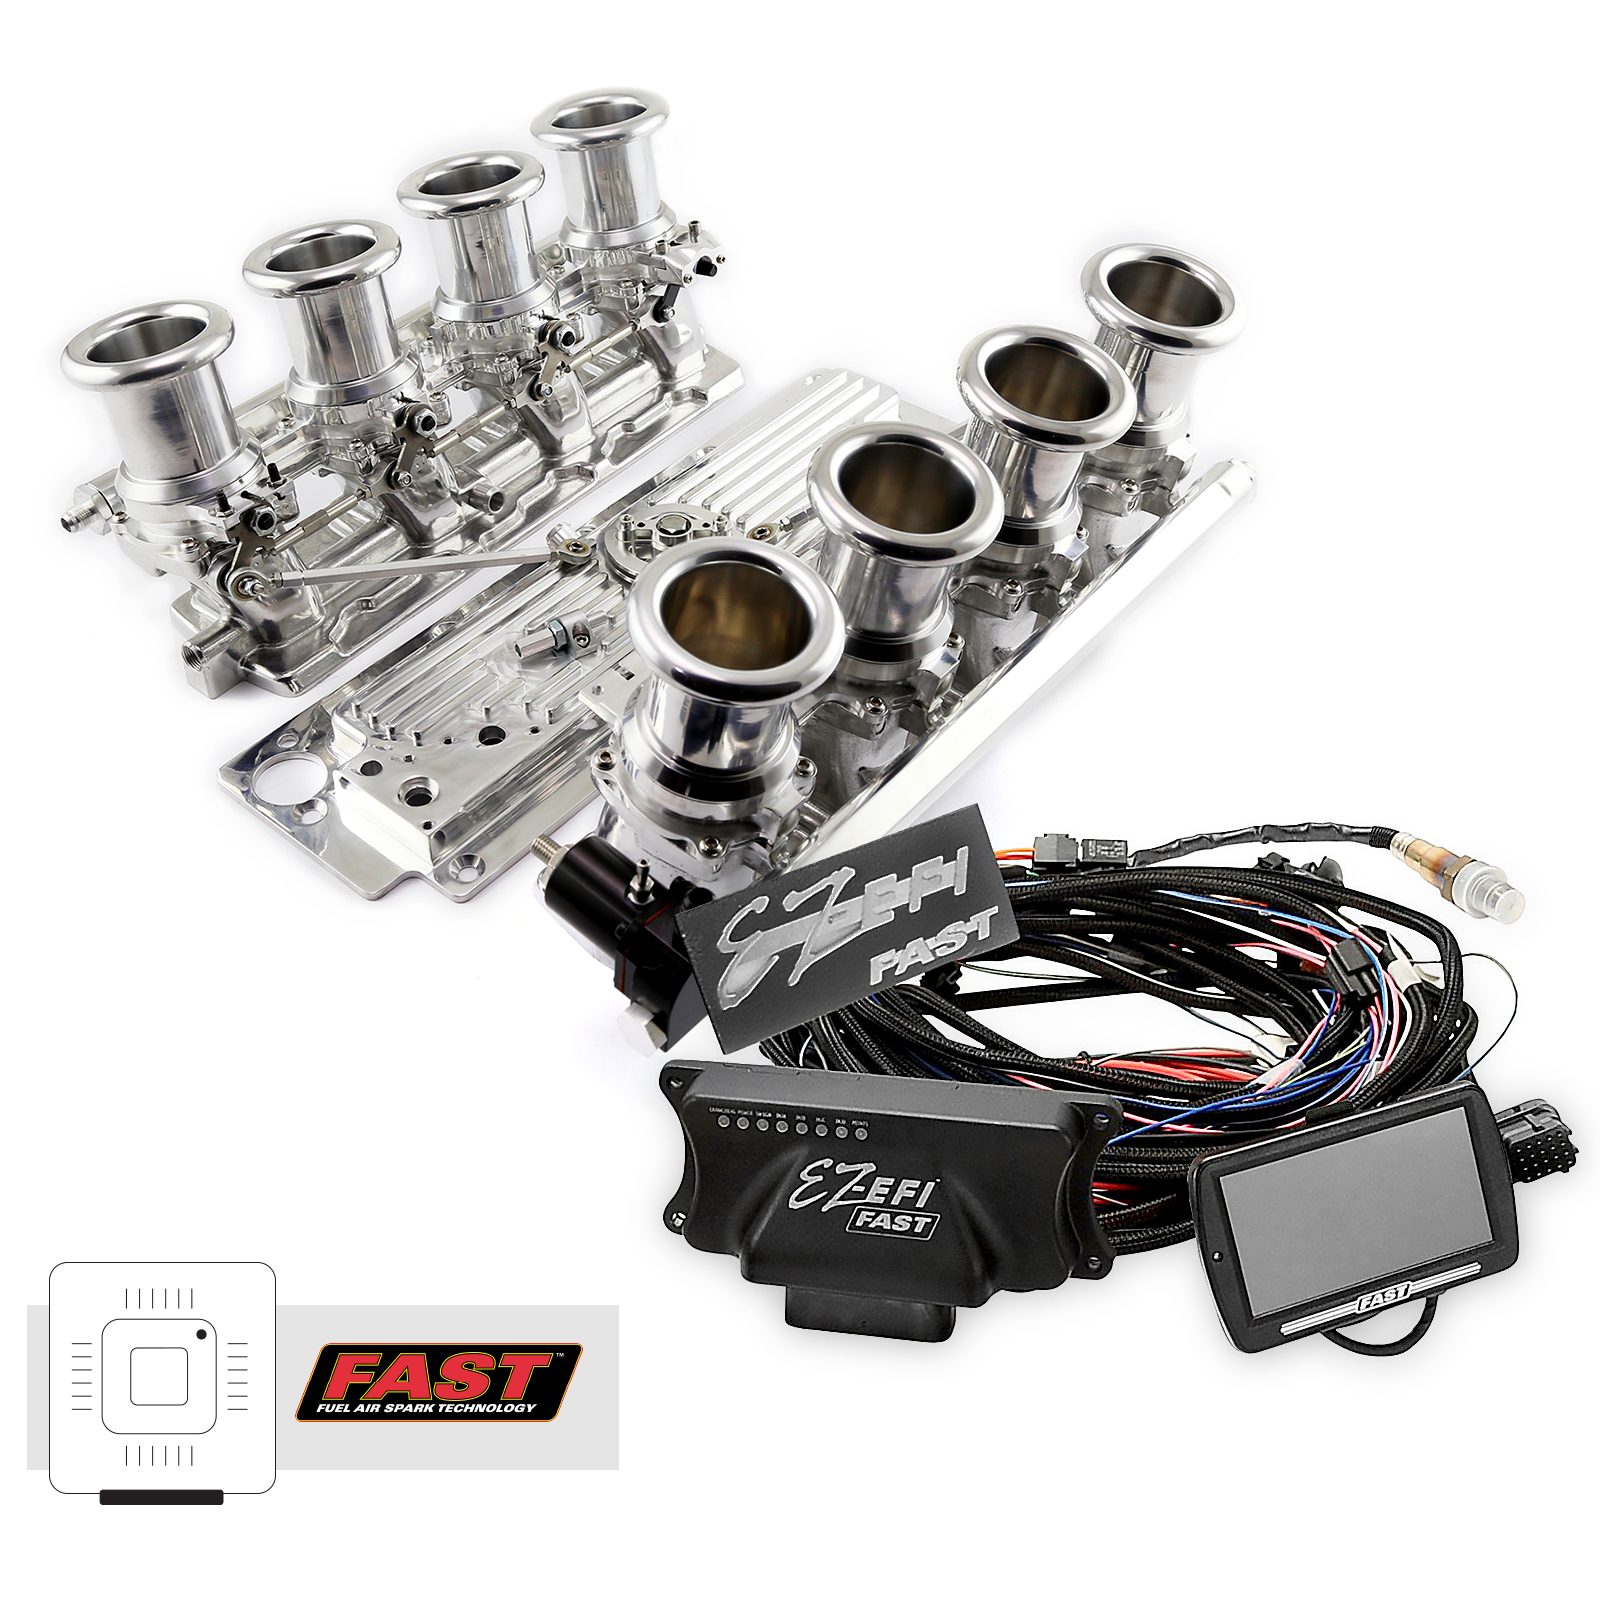 Chevy GM LS3 Downdraft + FAST EZ-EFI 2.0 Fuel Injection System - Polished